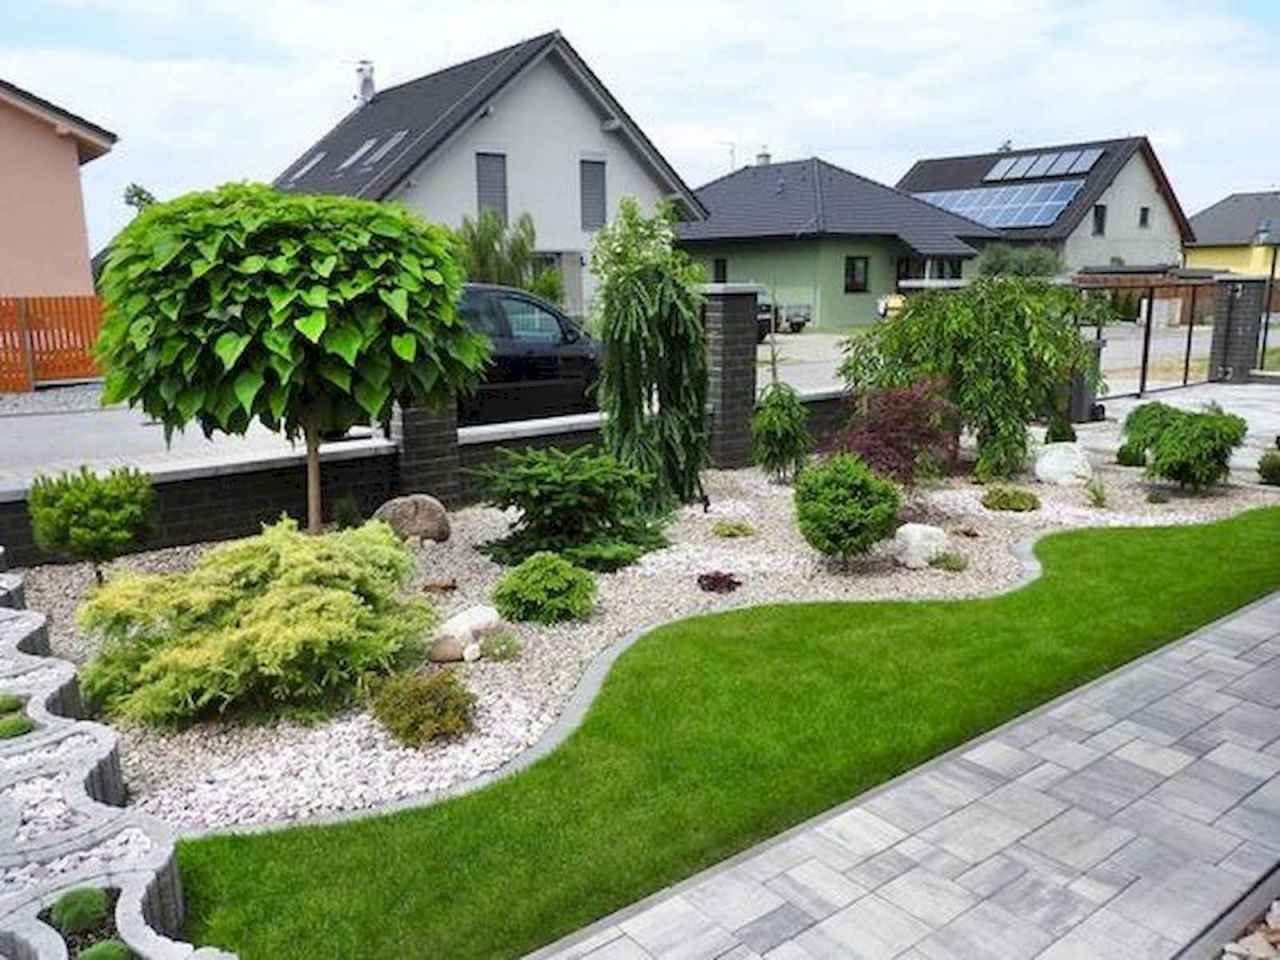 90 simple and beautiful front yard landscaping ideas on a on most beautiful backyard landscaping ideas id=14877